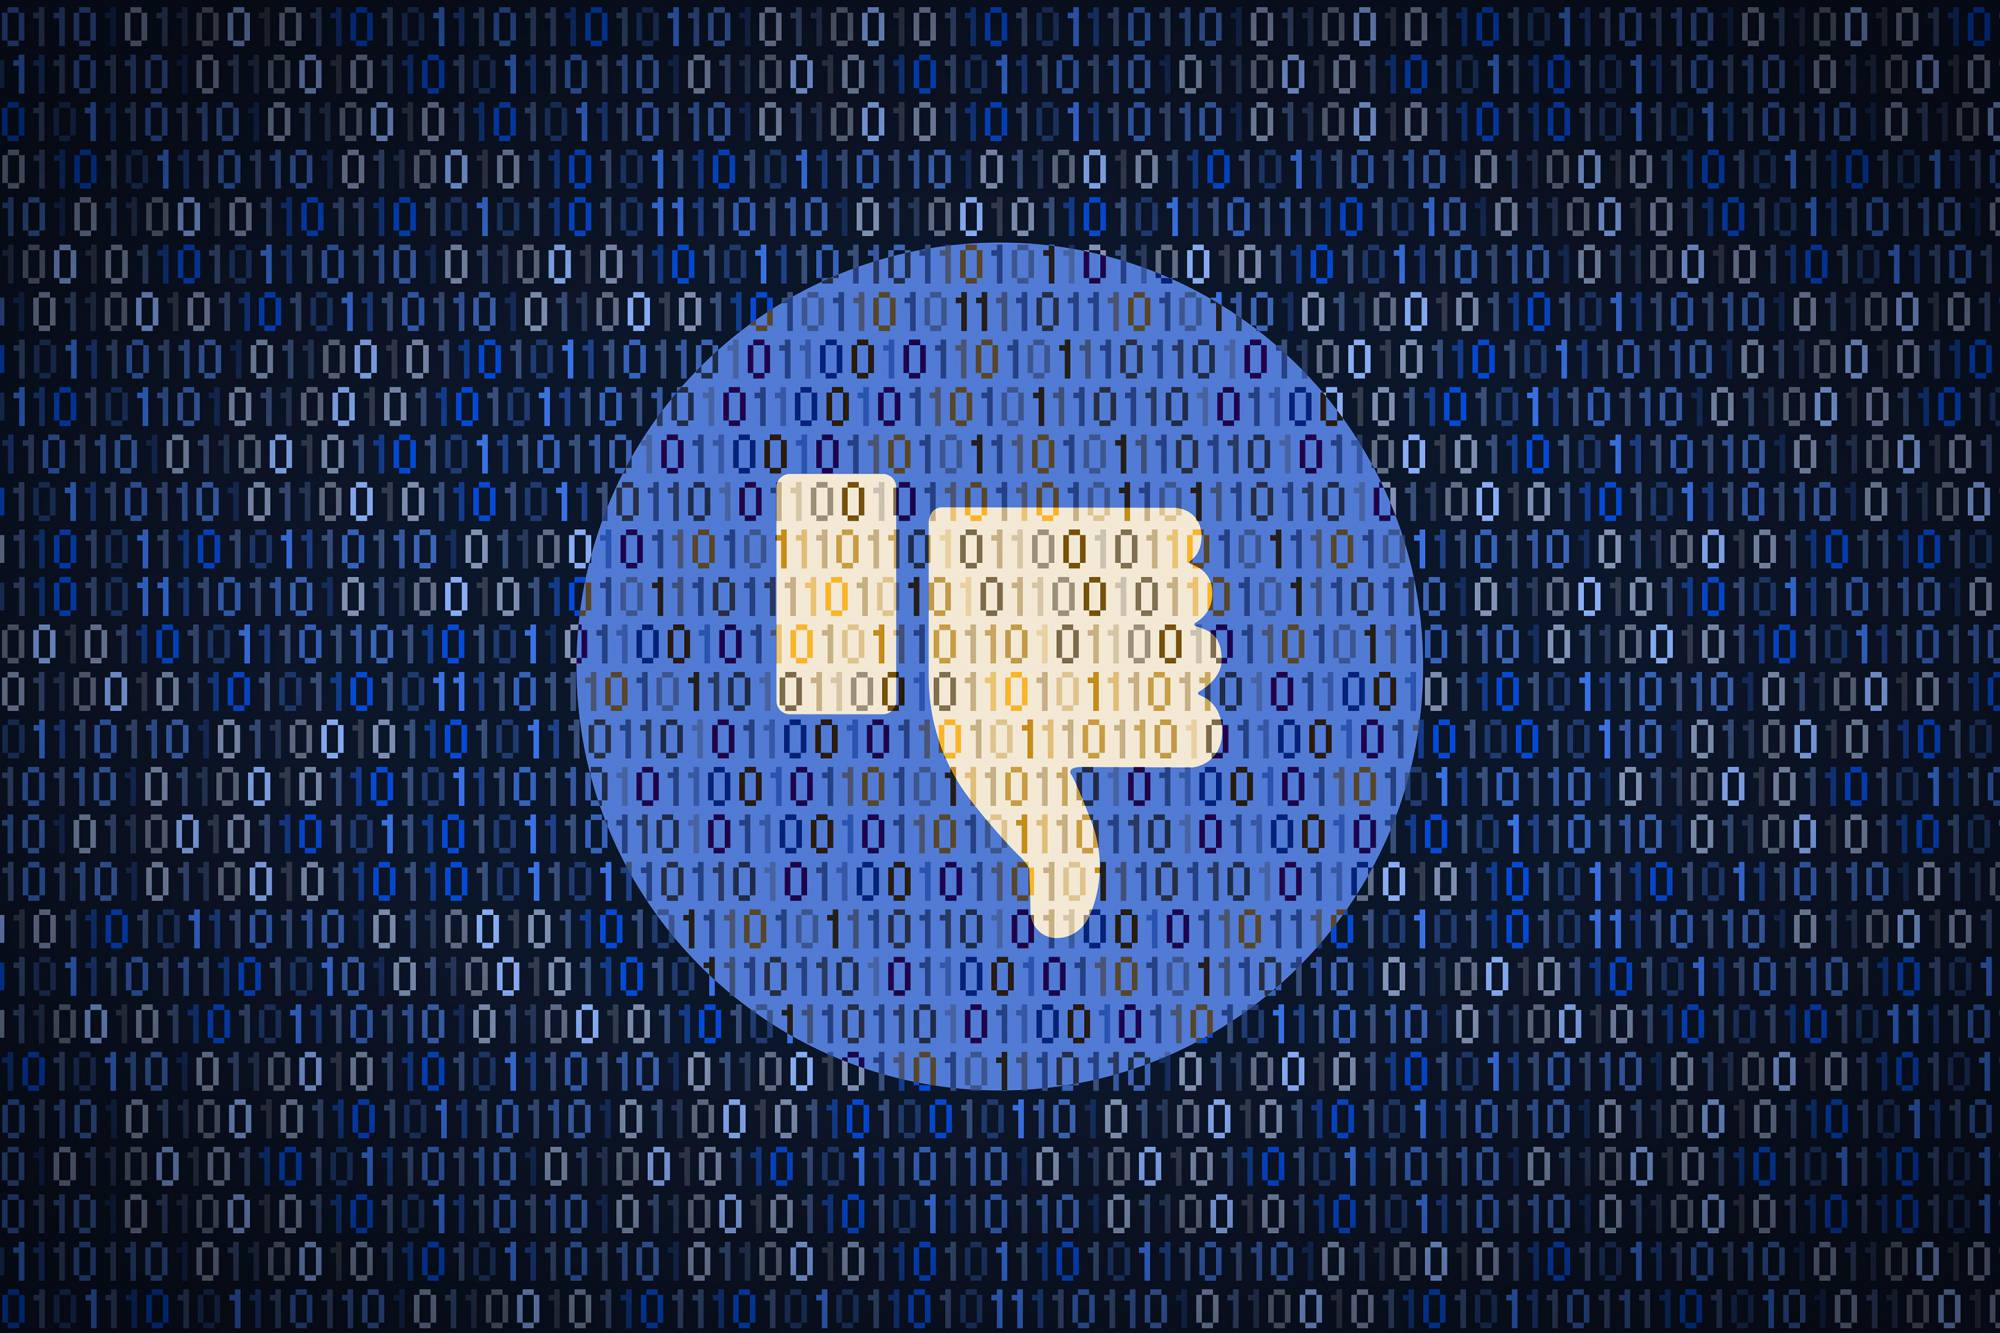 facebook-hack-code-thumbs-down